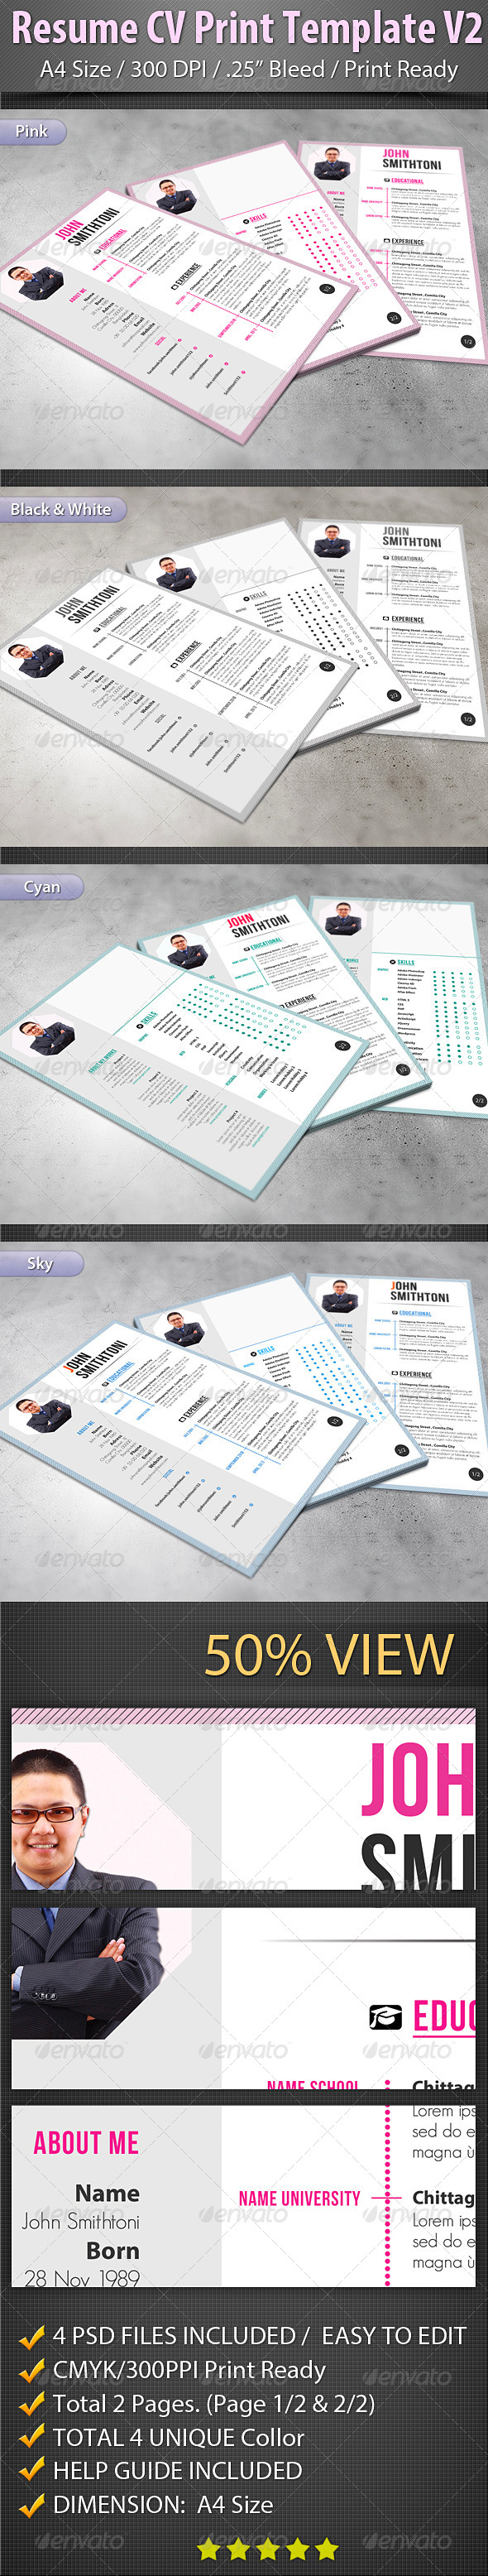 GraphicRiver Resume CV Print Template V2 7376546